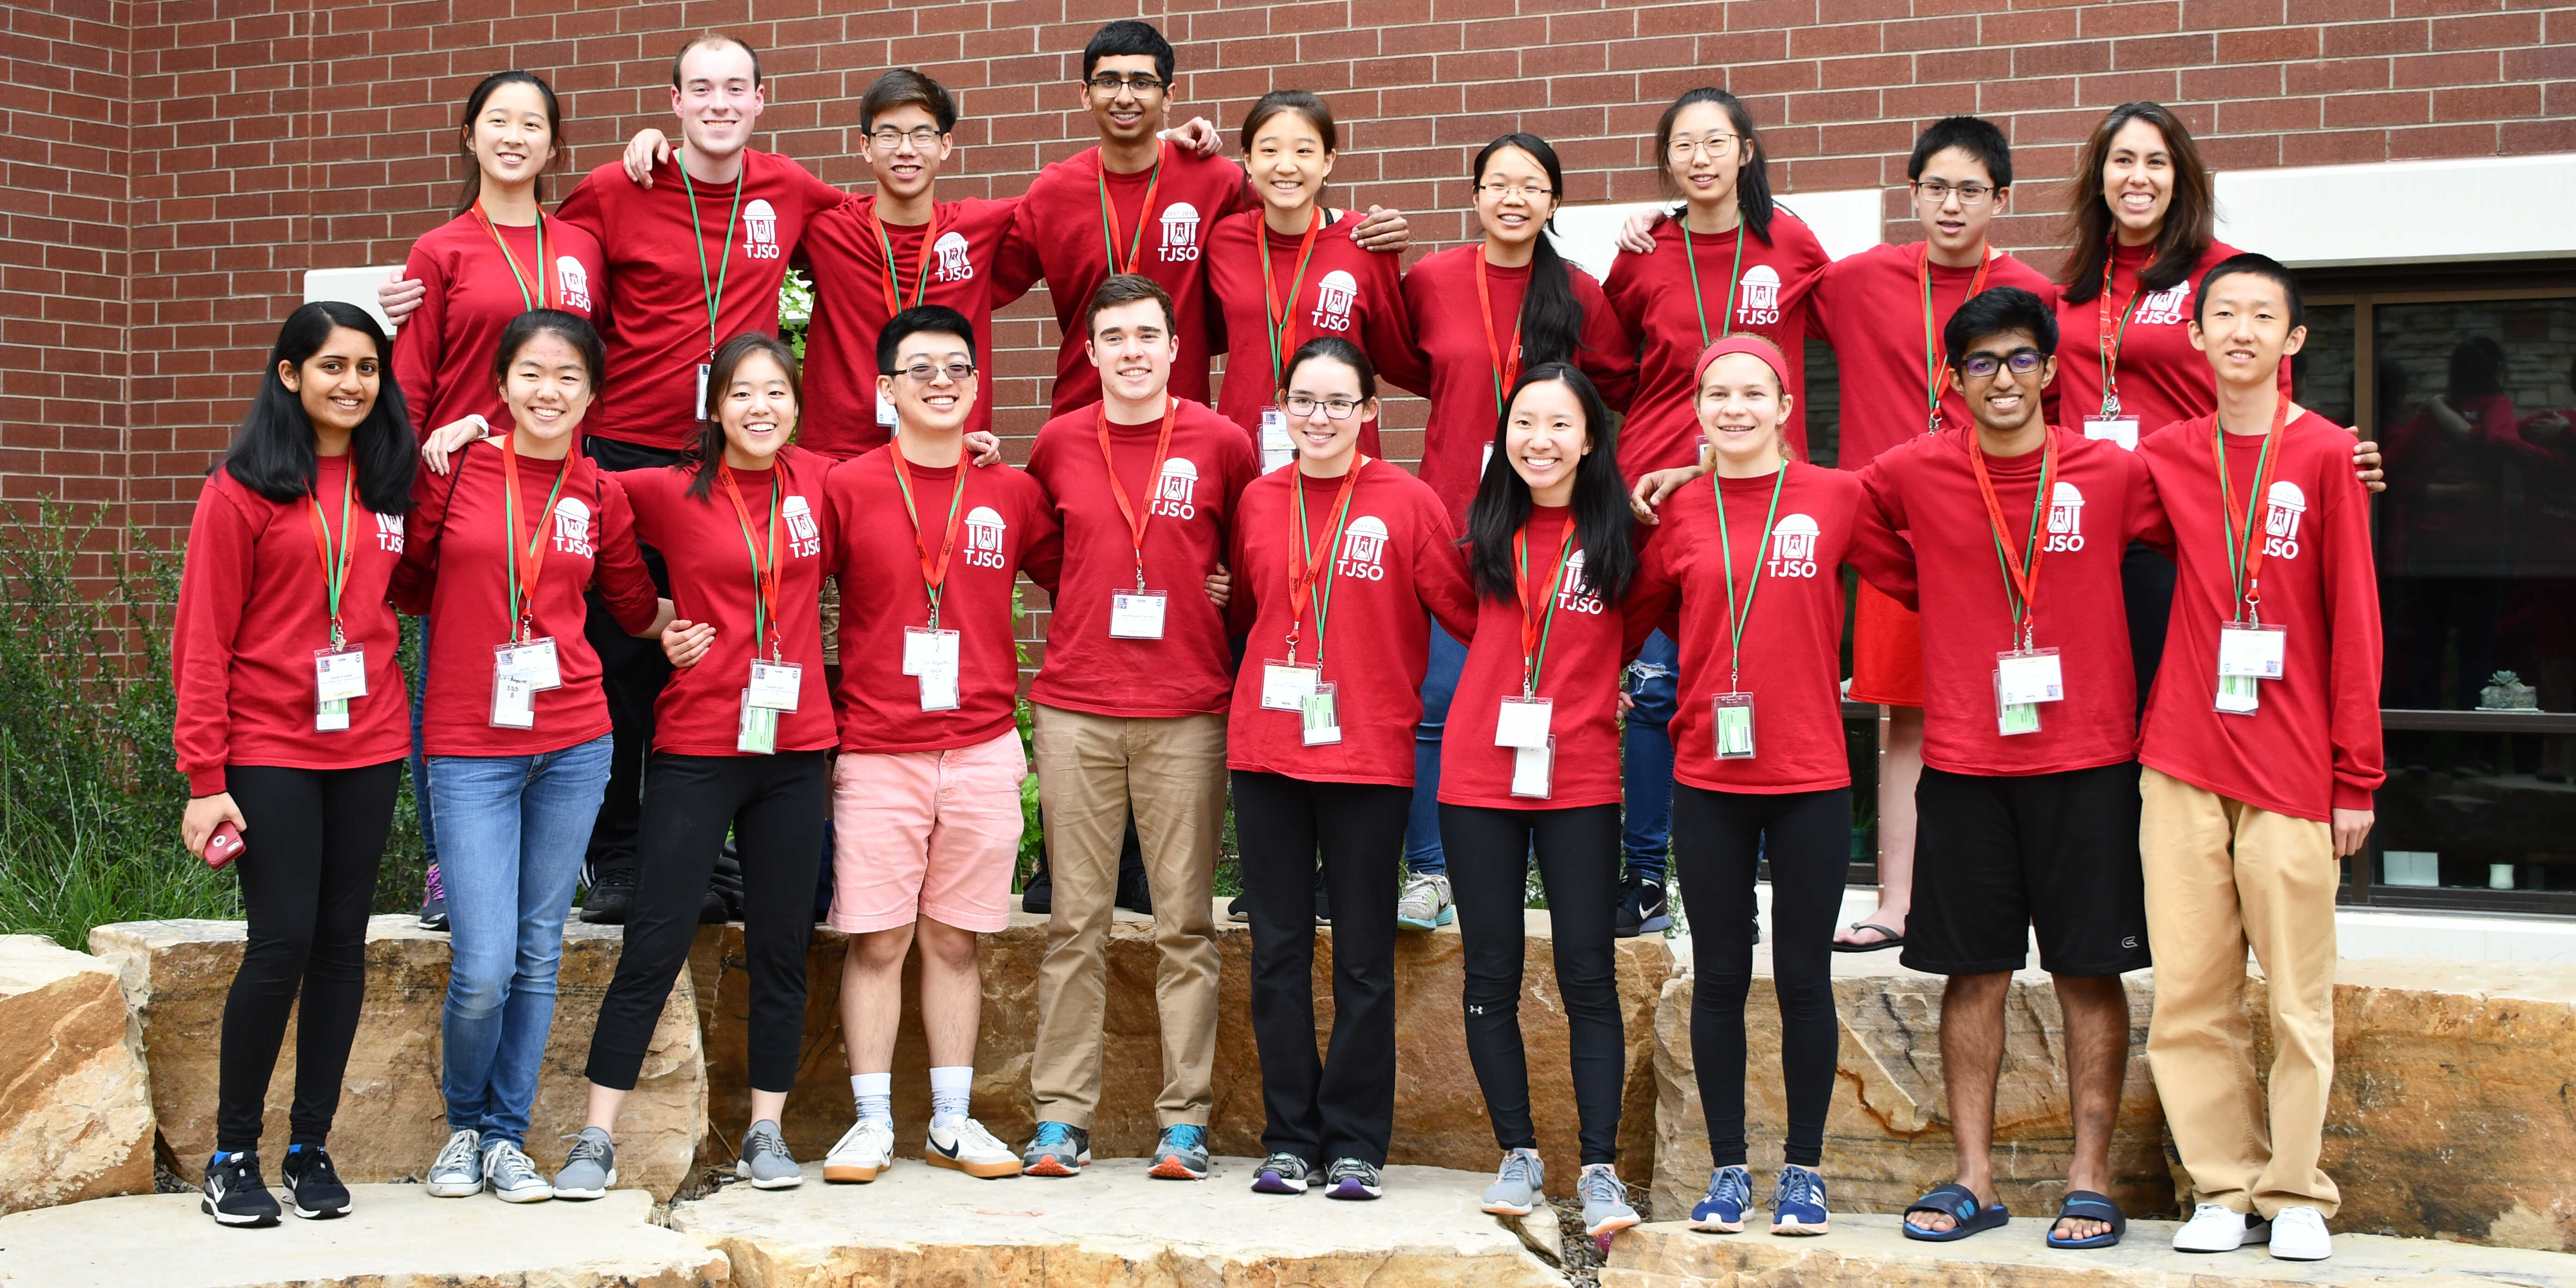 Our 2018 states team at the Science Olympiad National Tournament